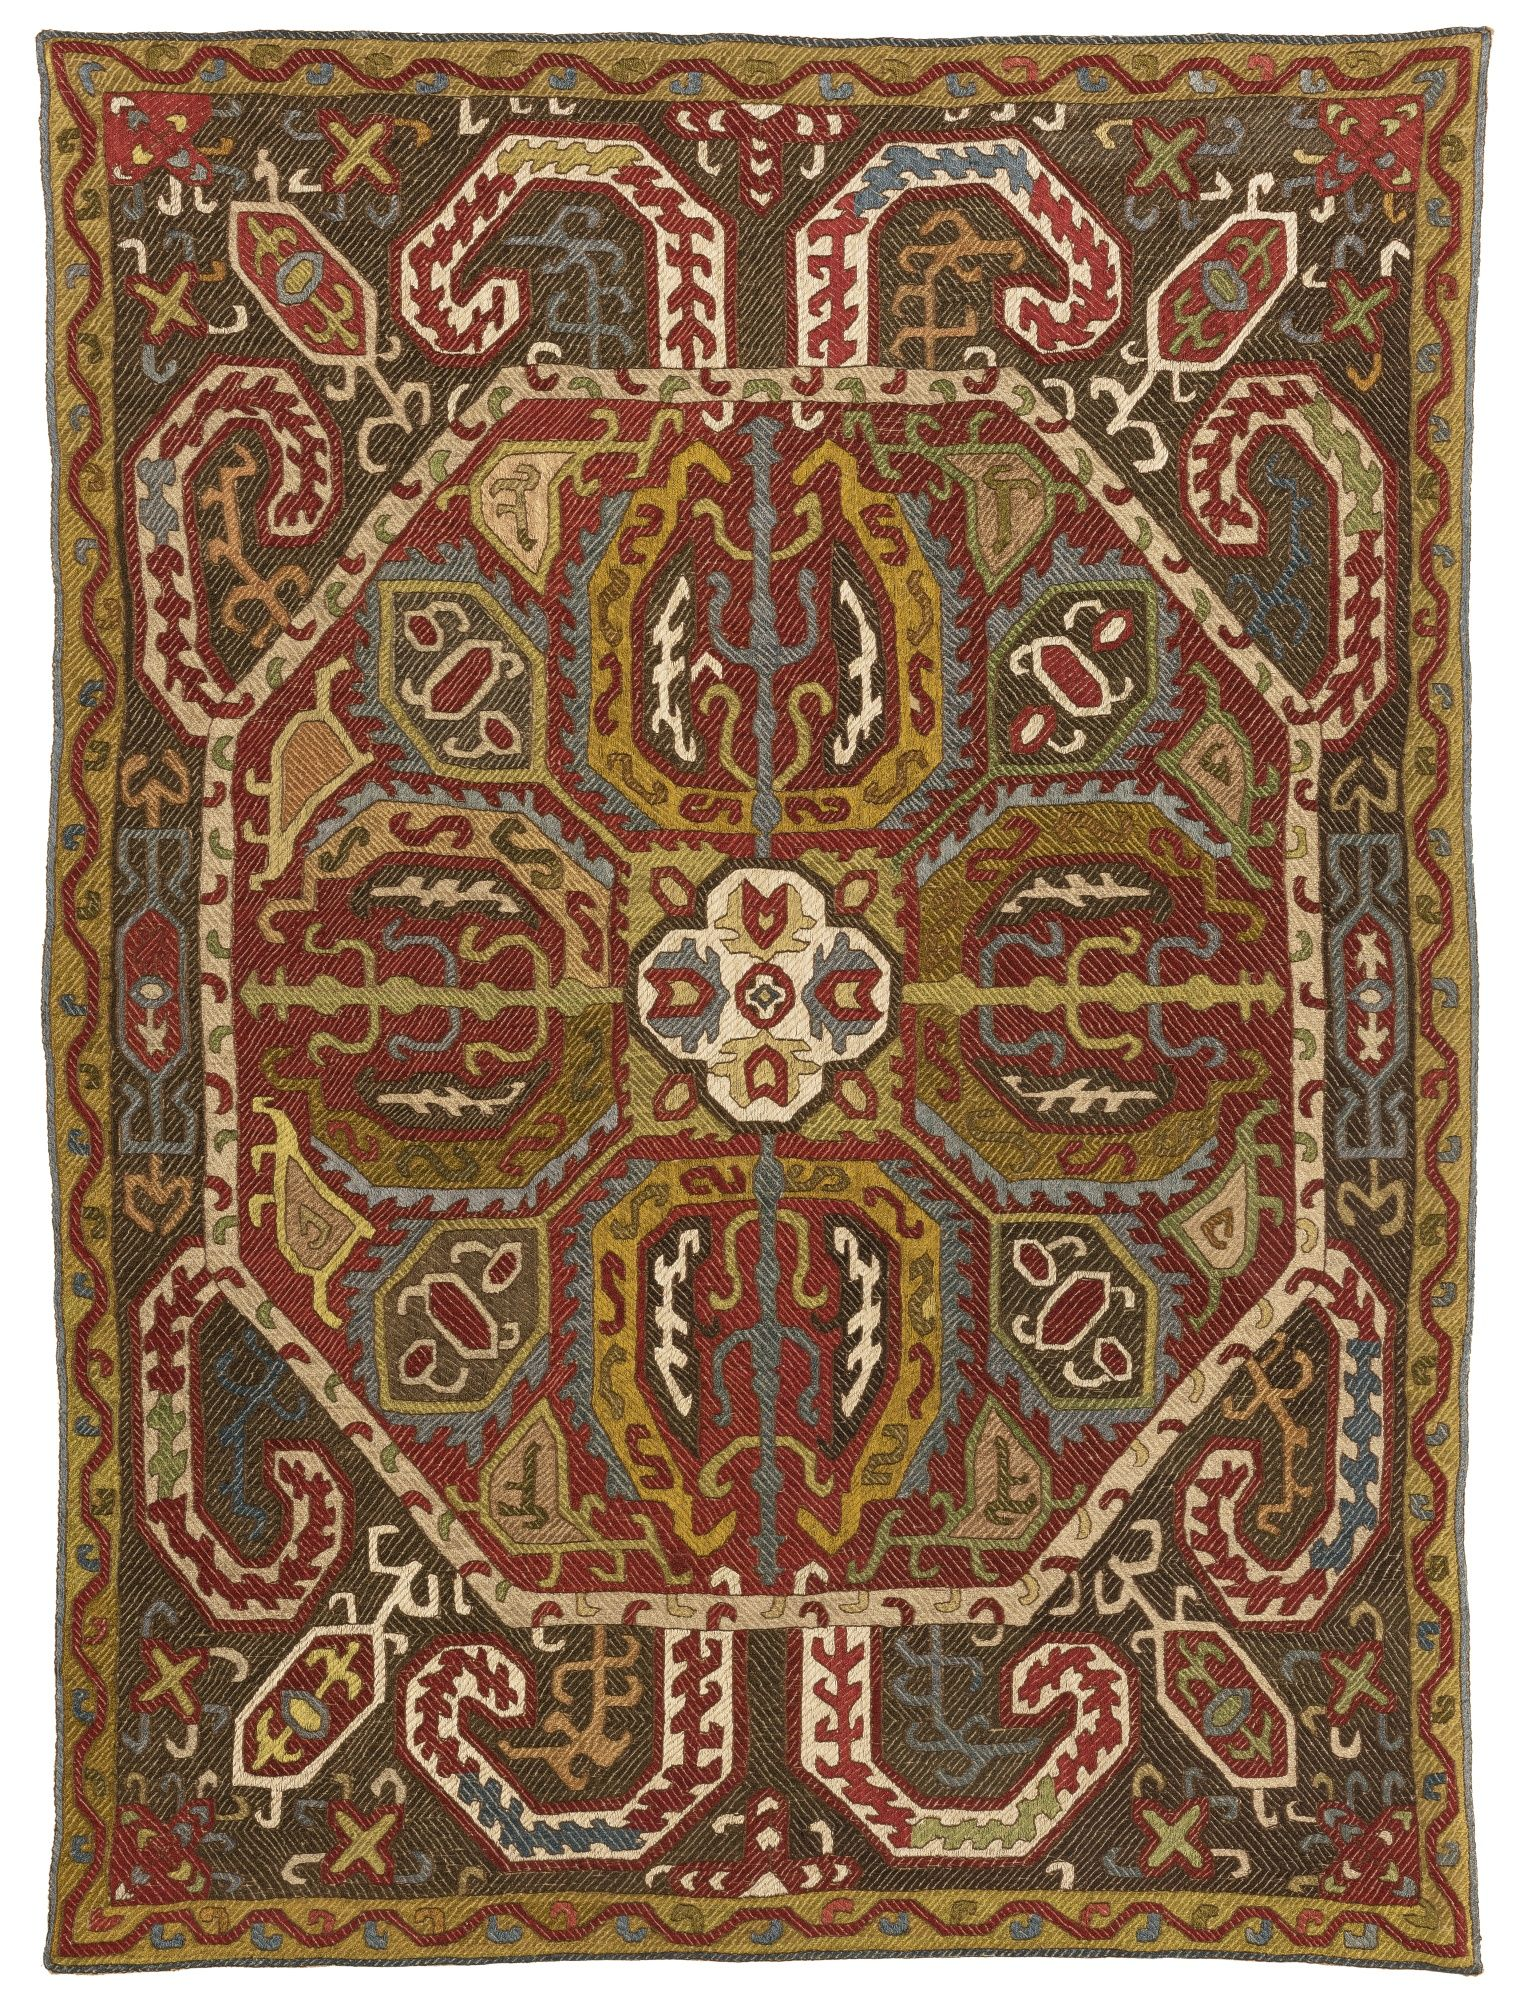 Azerbaijan silk embroidered in satin and running stitches th c